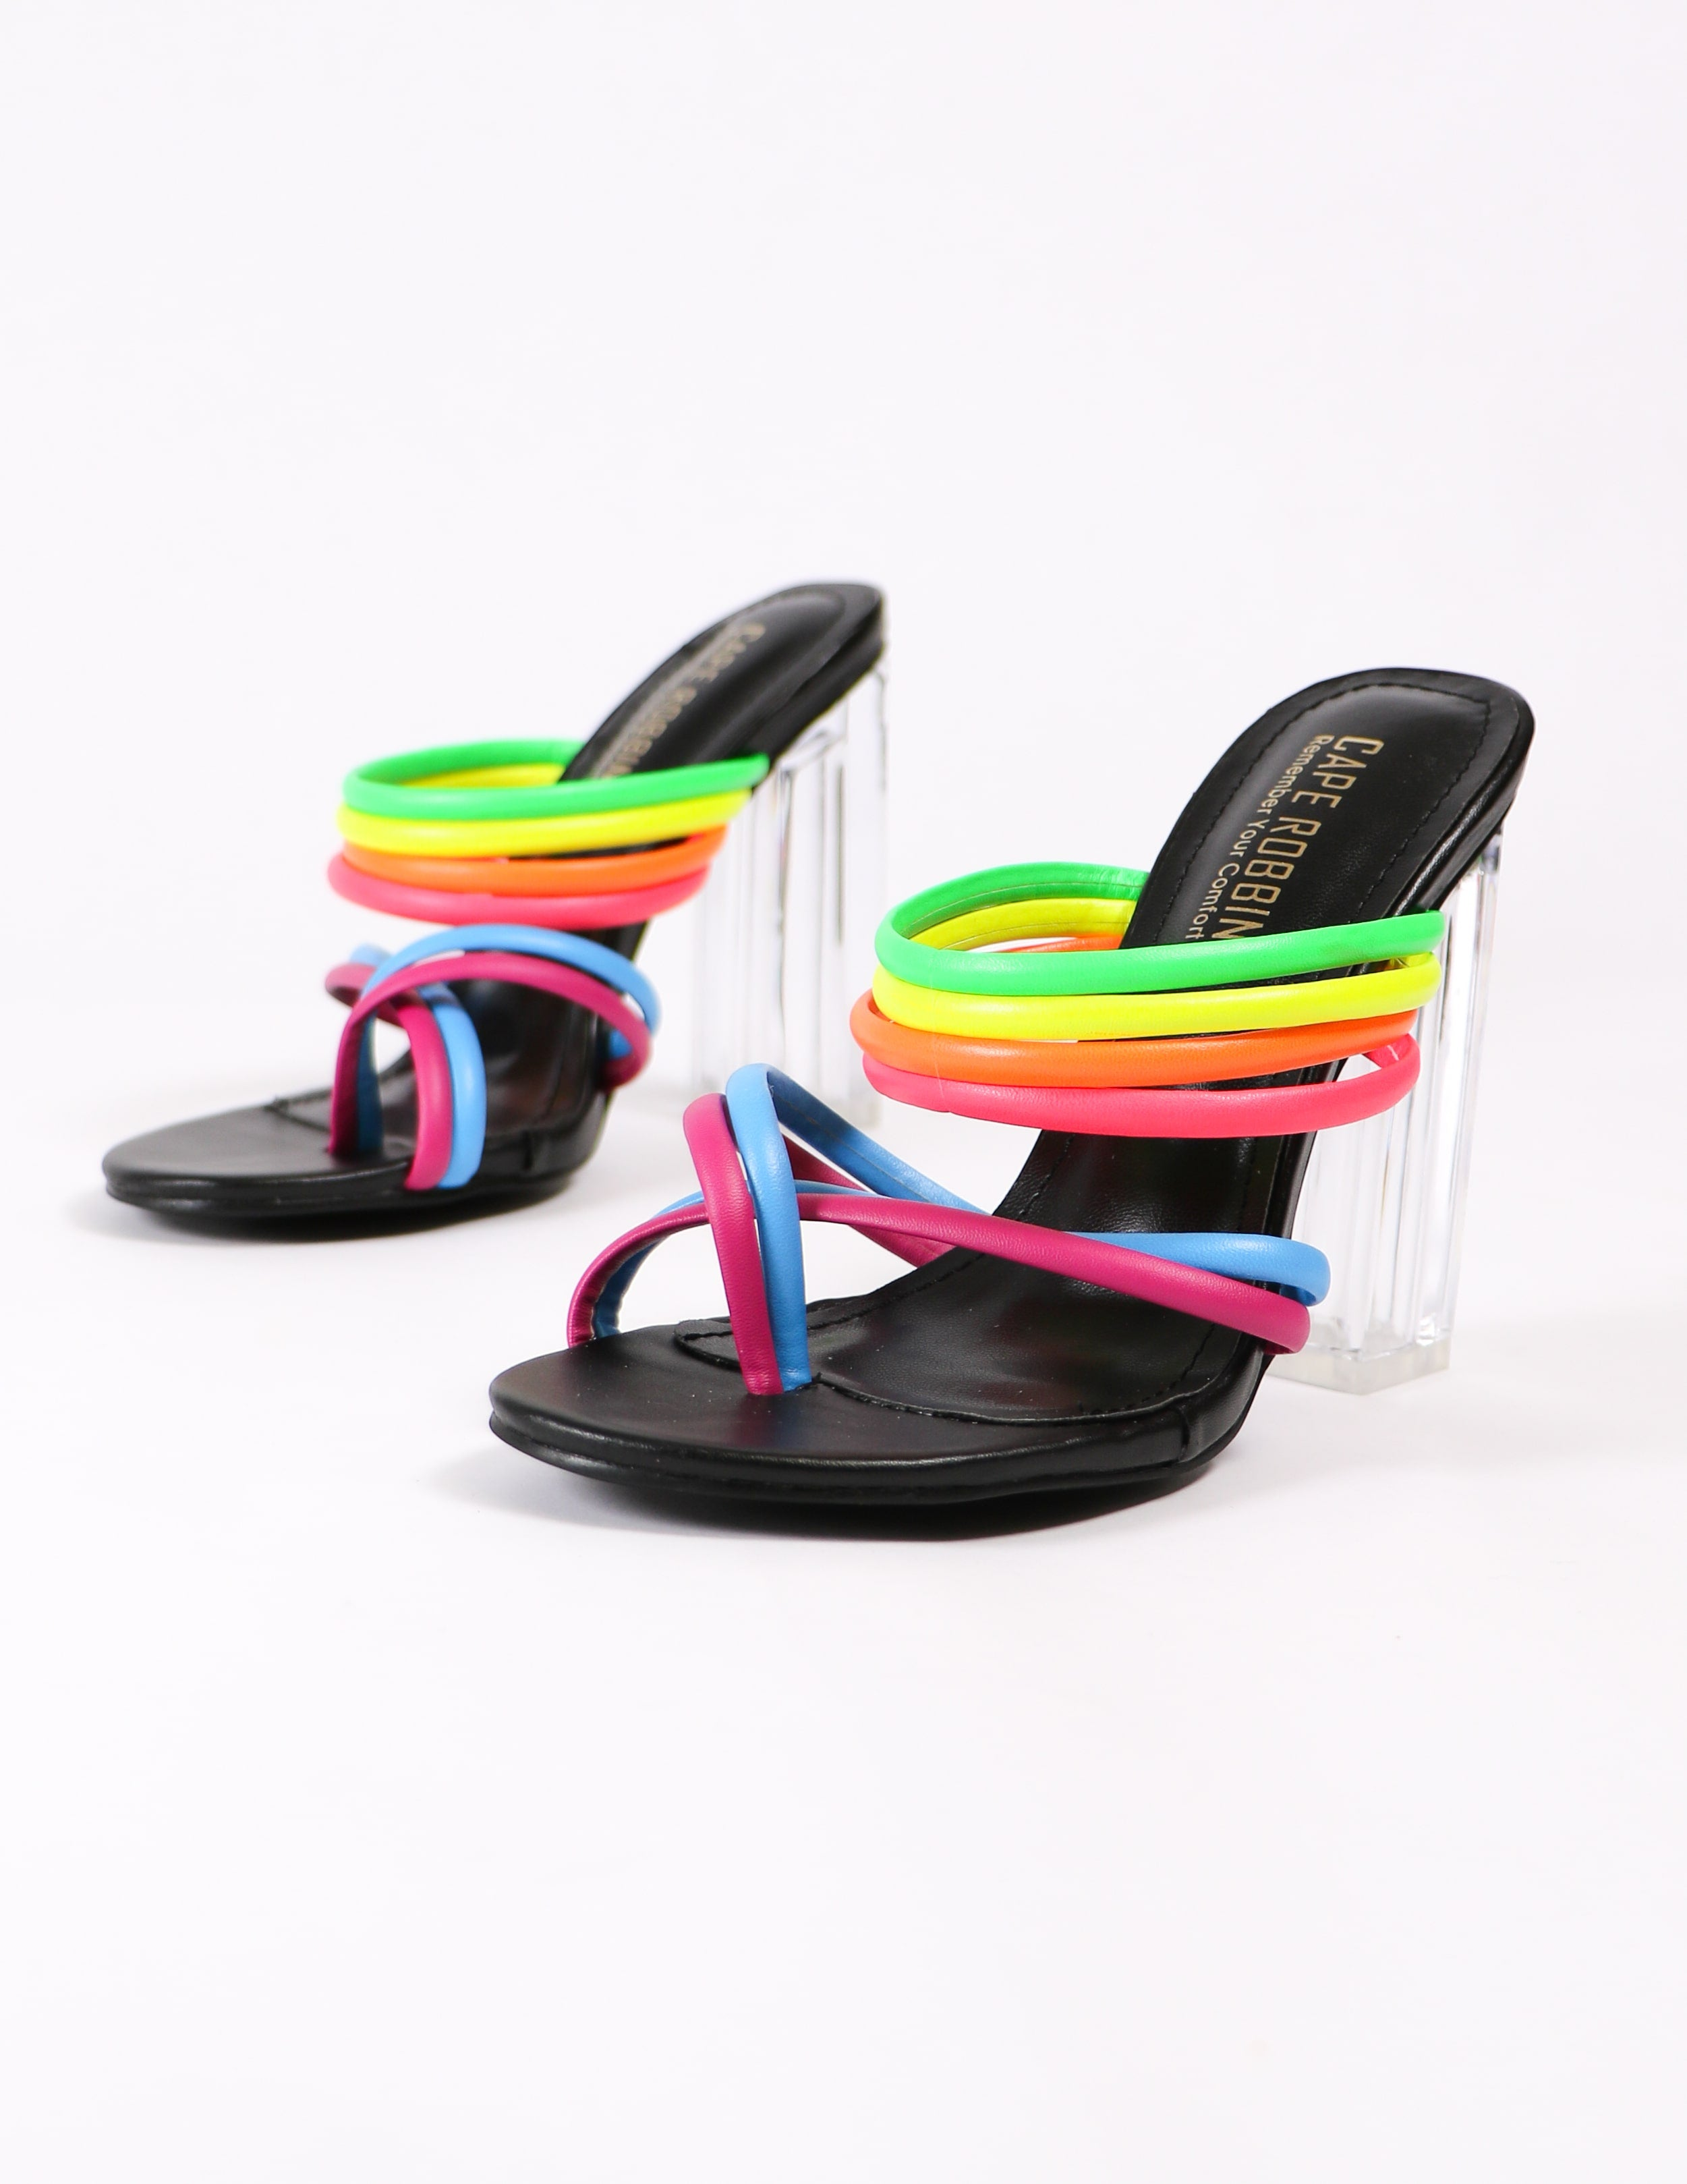 leading rainbow crystal block heels on white background